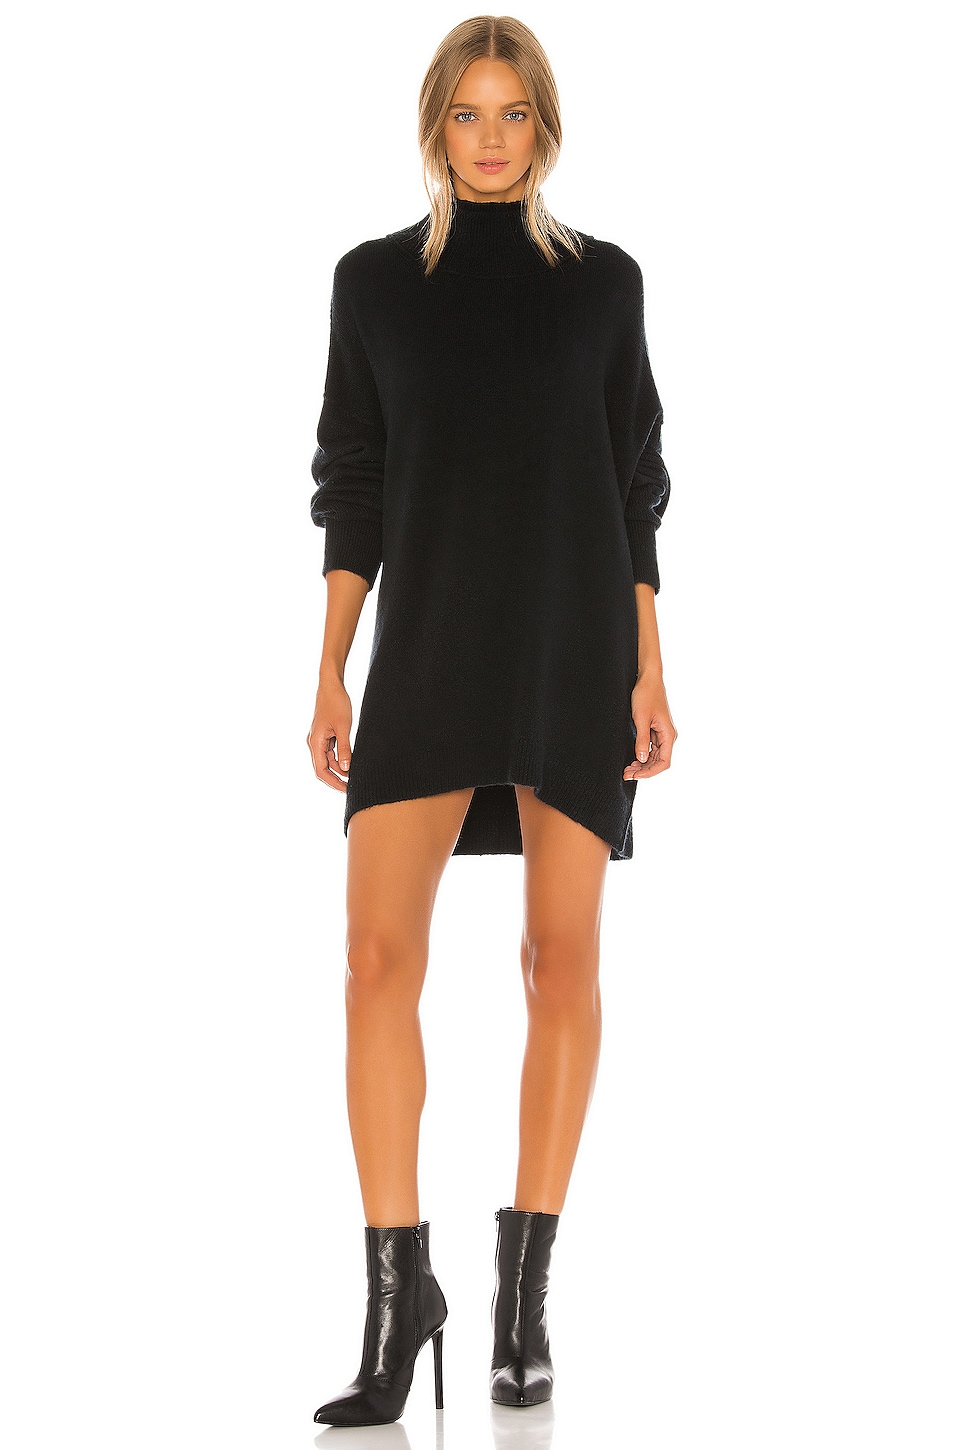 Afterglow Mock Neck Sweater Dress                   Free People                                                                                                                             CA$ 167.39 24